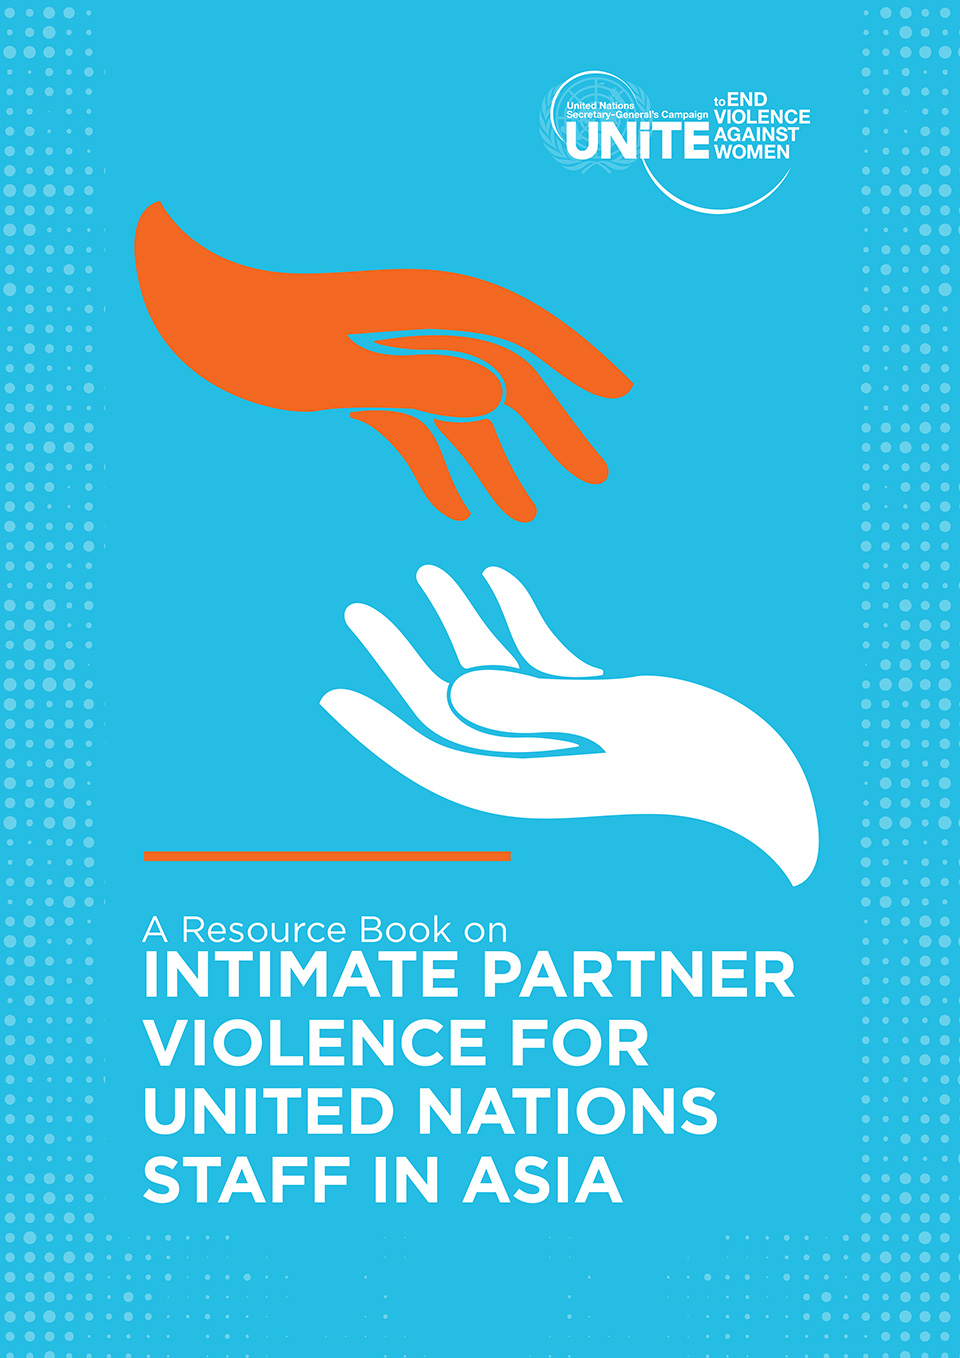 A Resource Book on Intimate Partner Violence for United Nations Staff in Asia